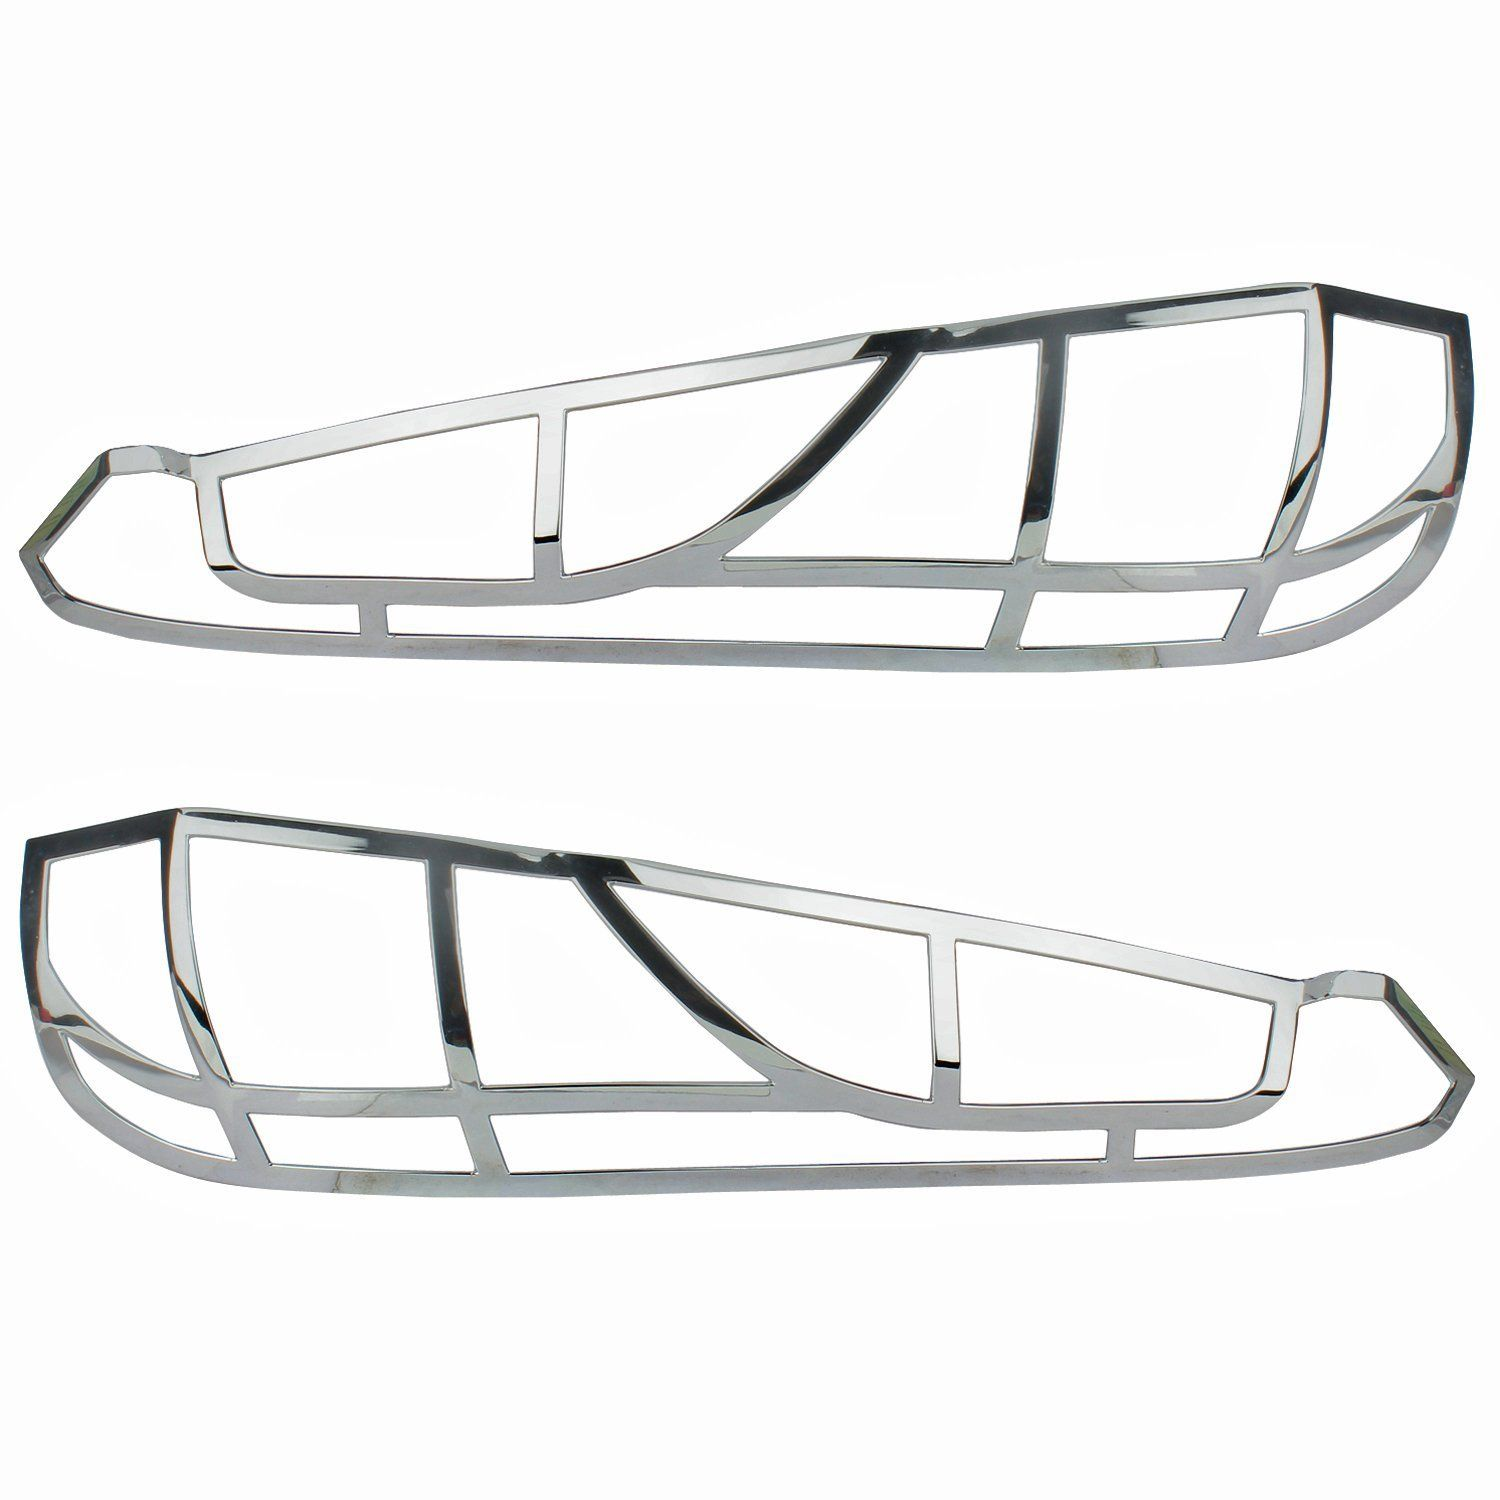 TAIL LAMP MOULDINGS FOR FORD FIGO (SET OF 2PCS)